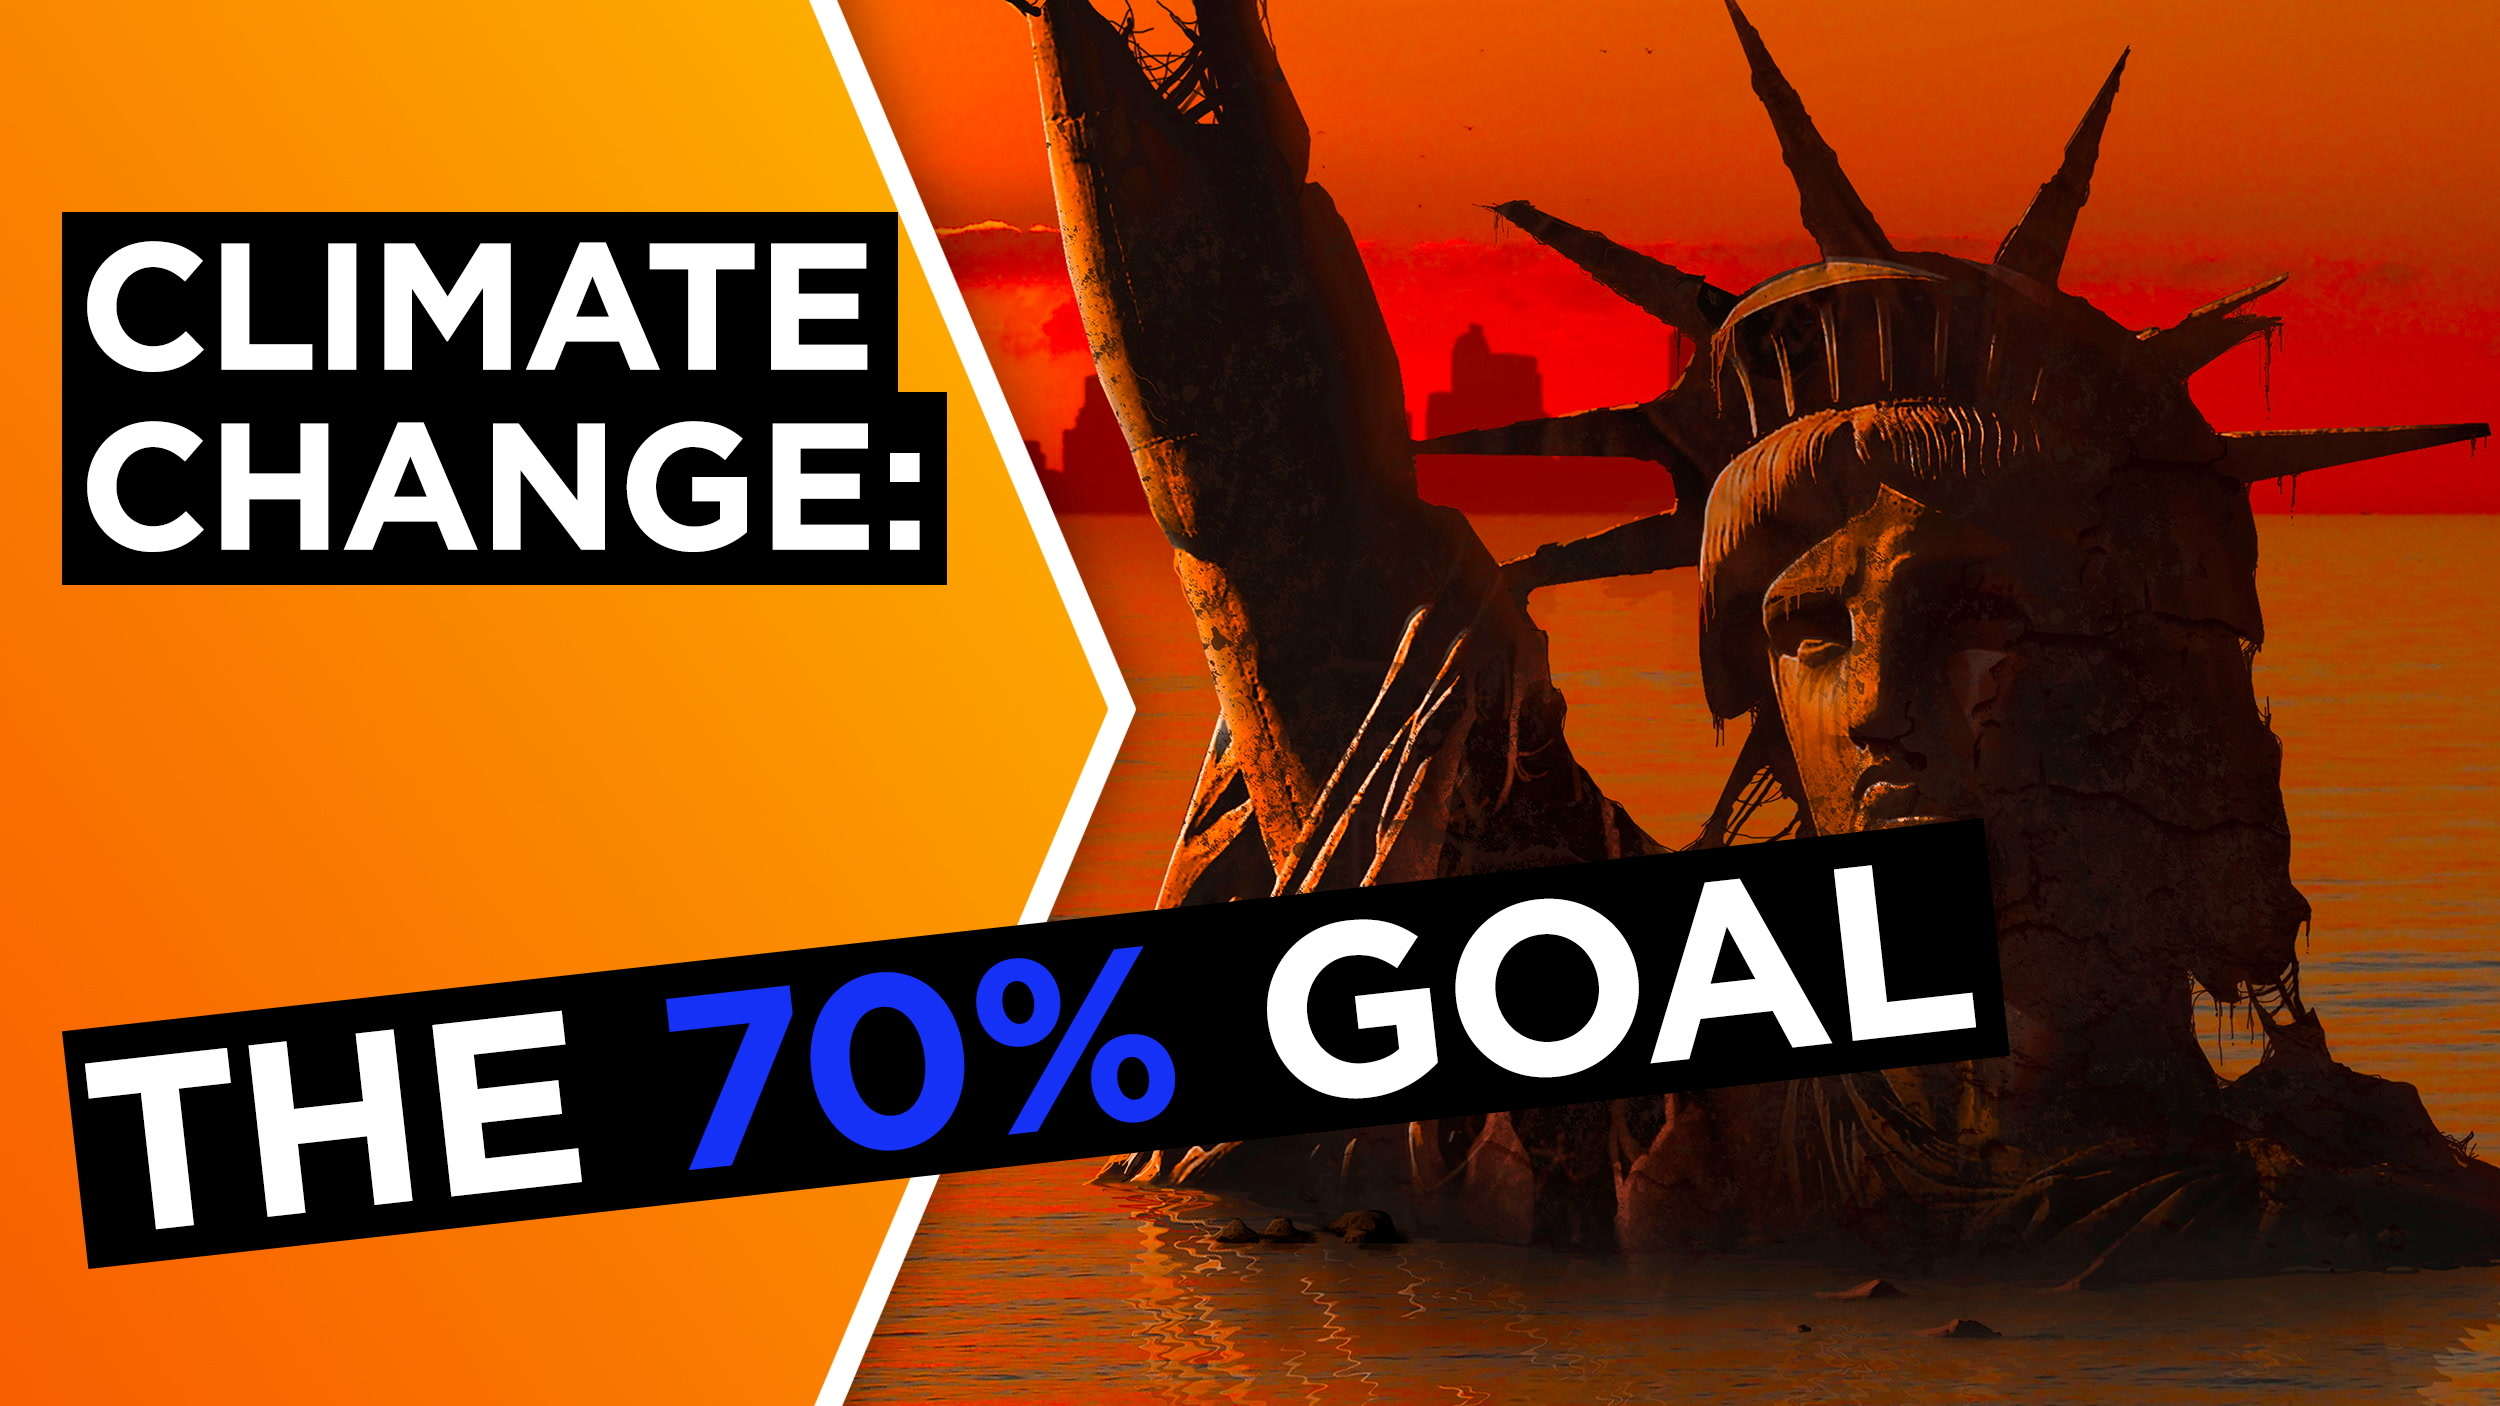 Climate change: Why we need 70% of U.S. politicians to unite